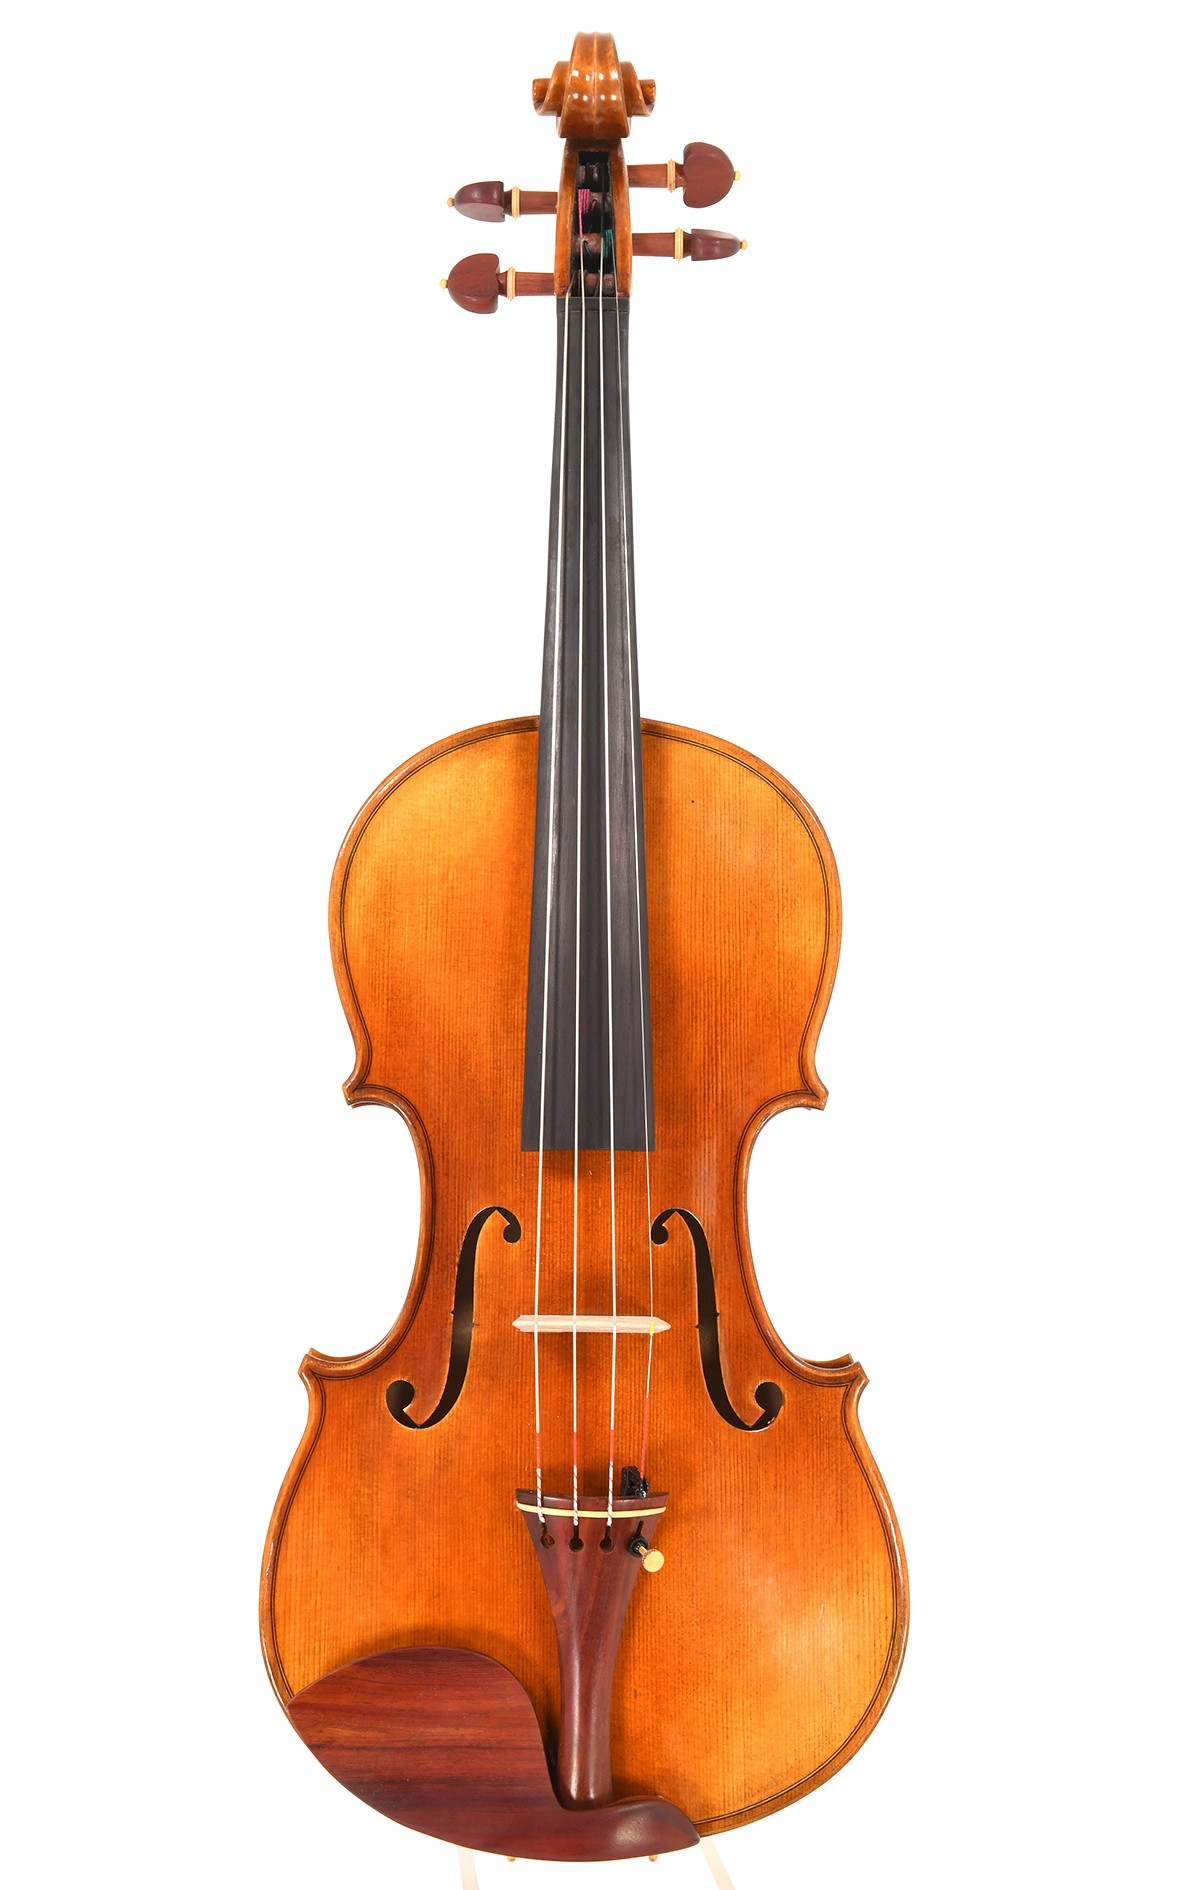 "Violin opus 12 no. 13 from the ""CV Selectio"" portfolio - meets sophisticated musical standards"